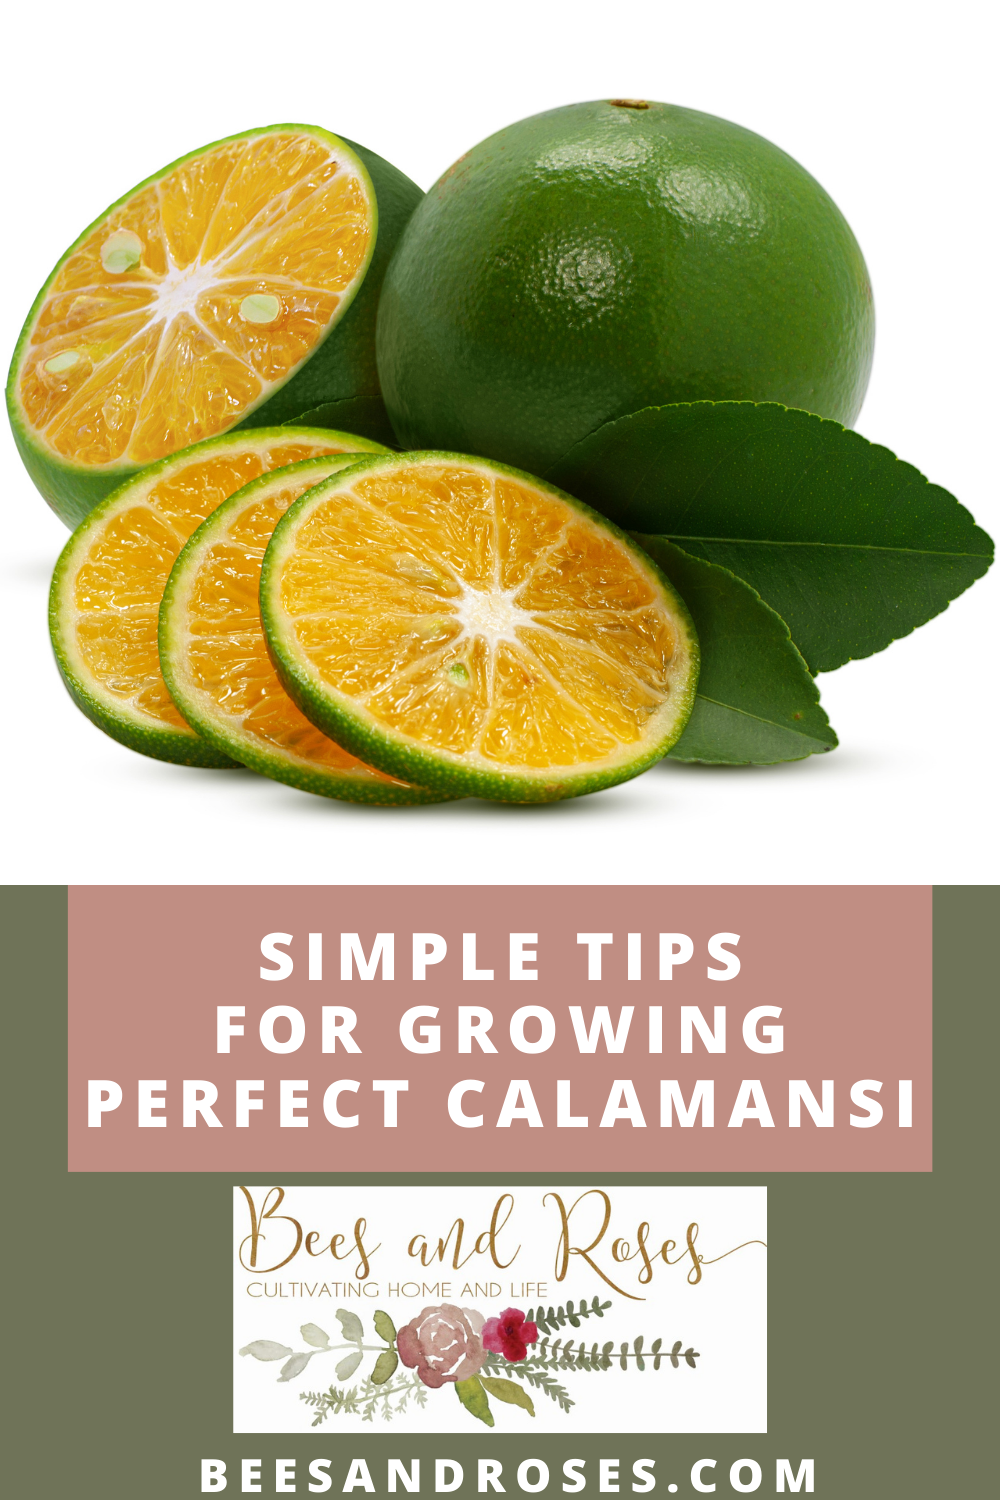 Beesandroses.com makes gardening accessible to people of all skill levels! Find out what you should be growing and how to let your plants thrive! Check out all you need to know before growing Calamansi fruits!